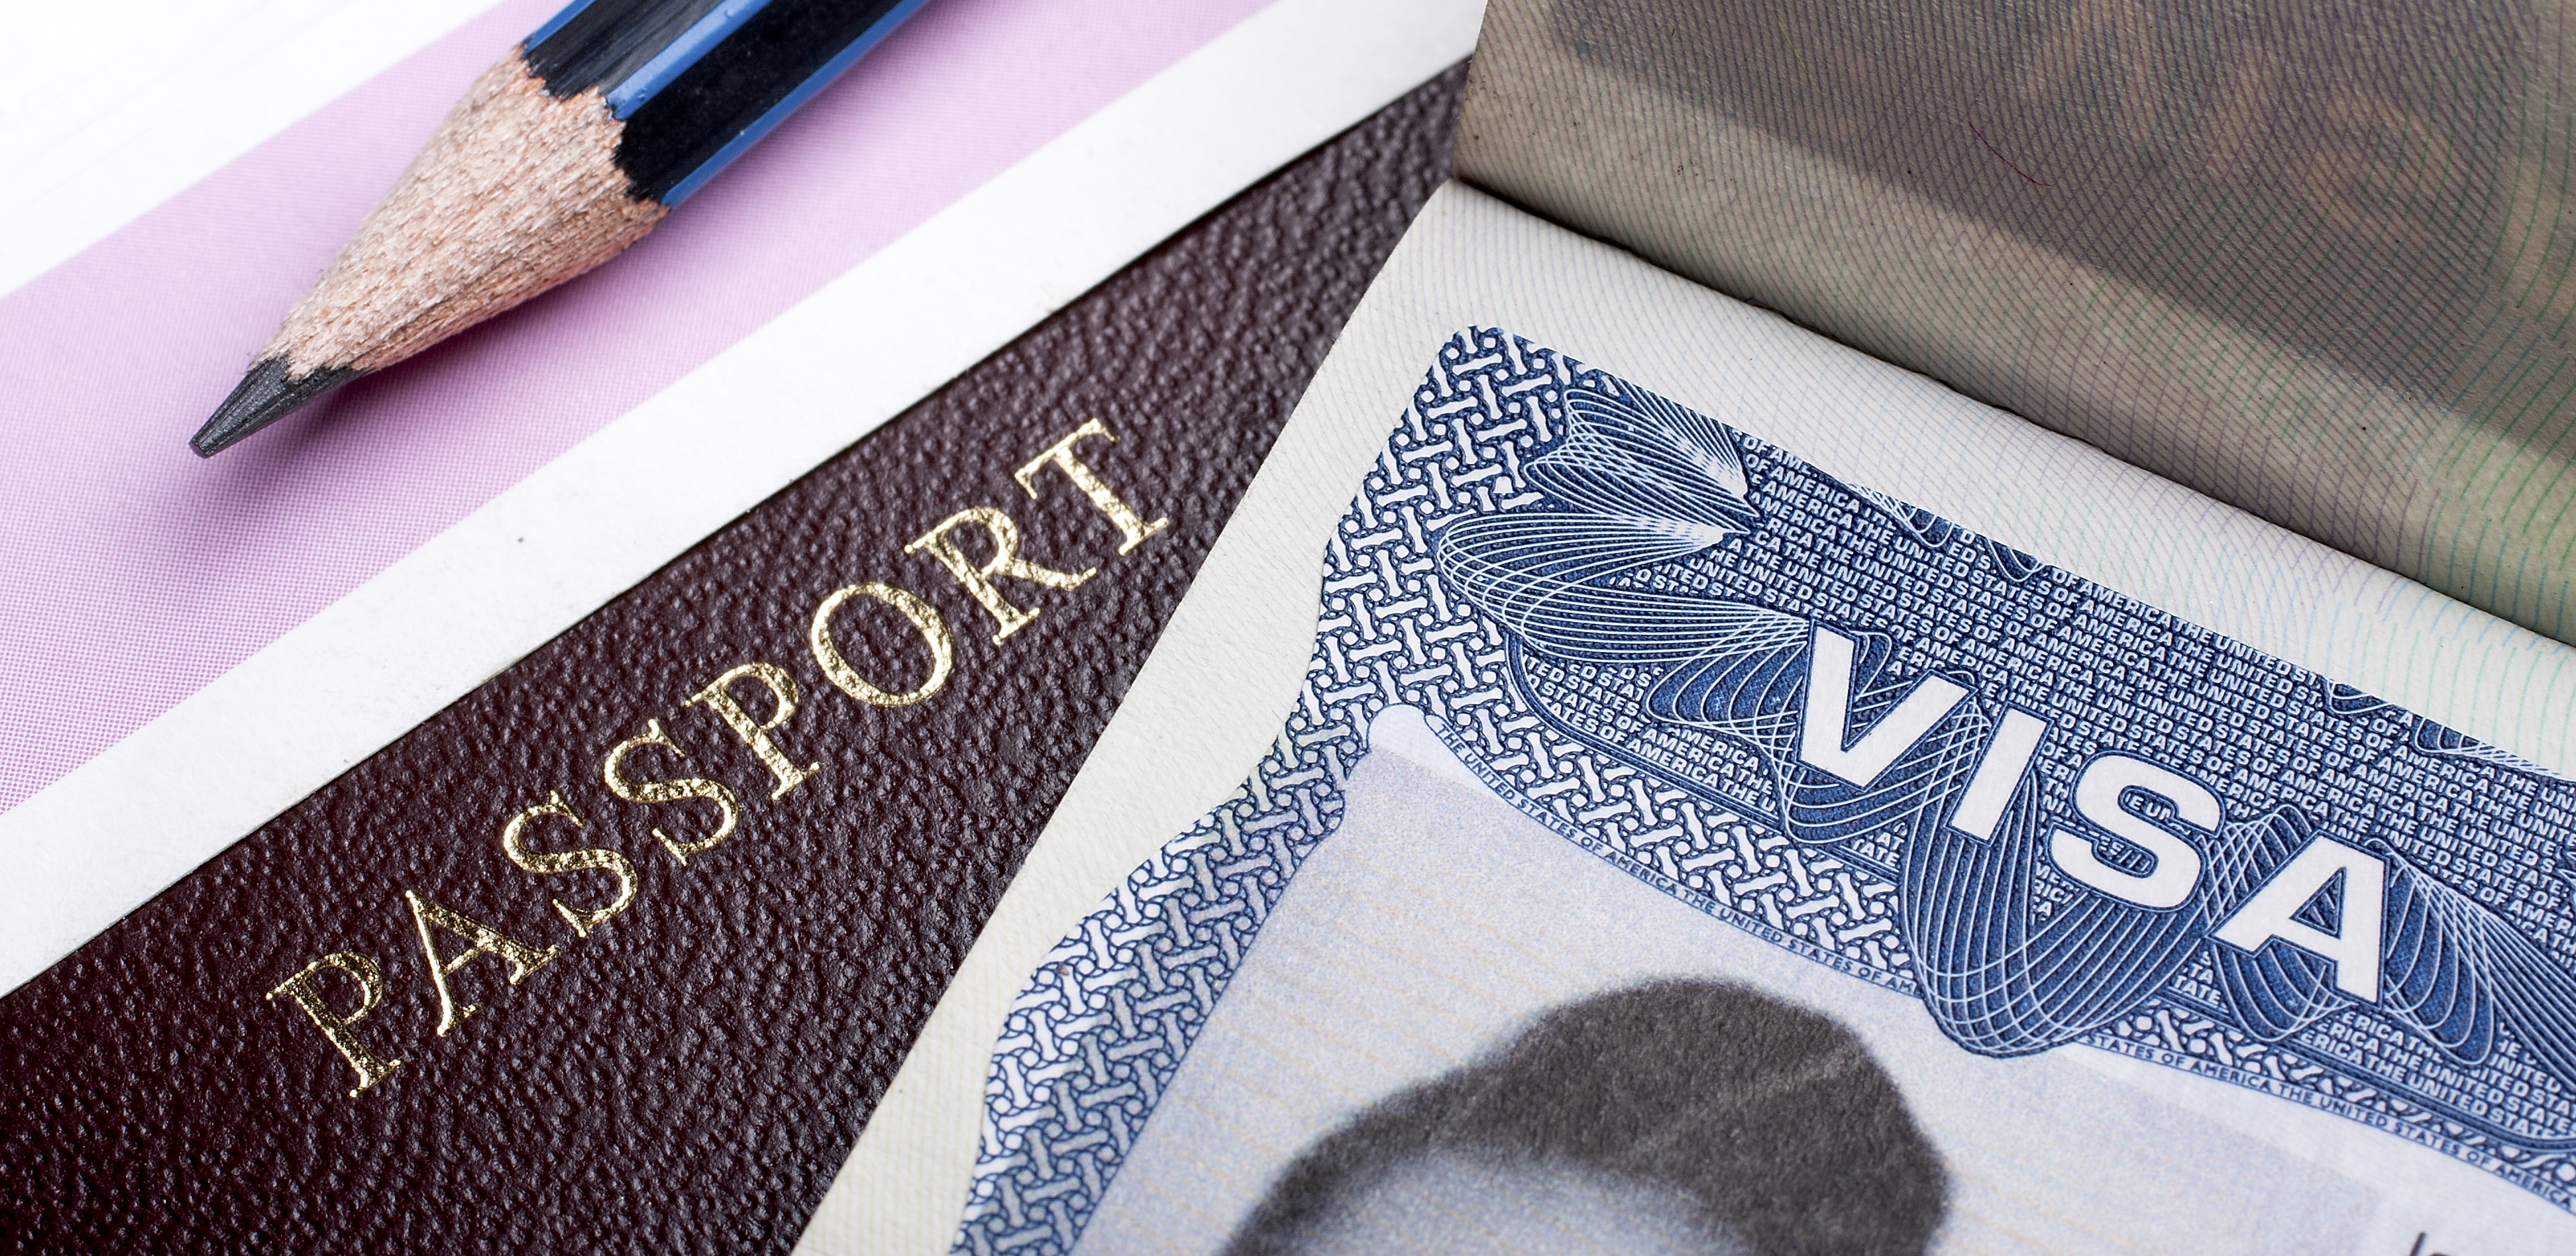 The Effect of ETIAS on the Common Visa Policy